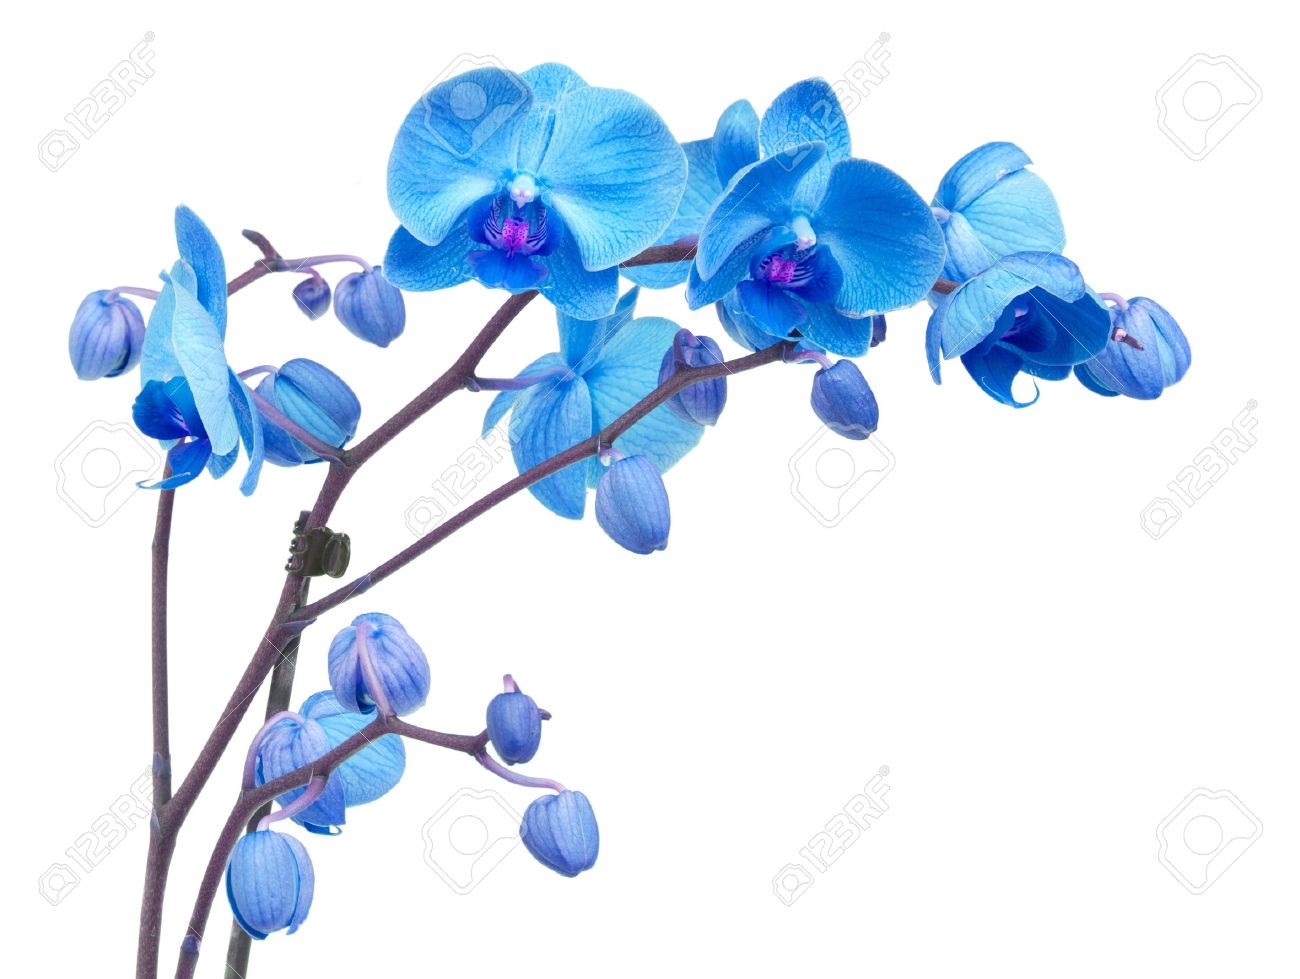 Orchid Branch With Blue Flowers Isolated On White Background Stock